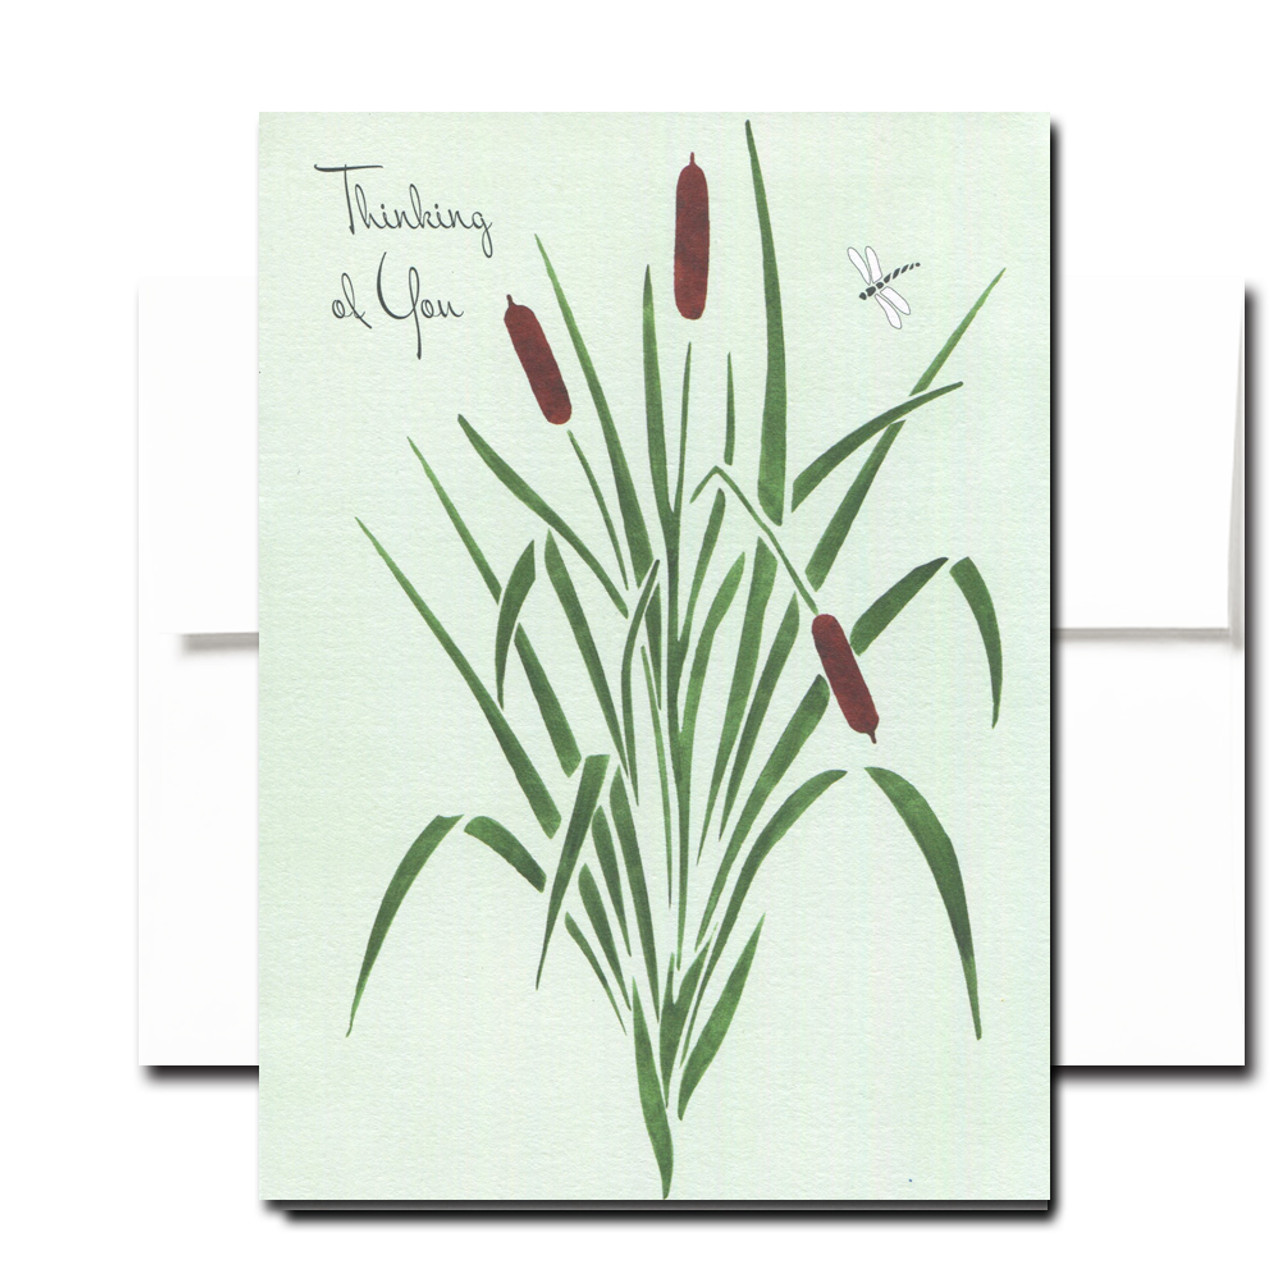 Thinking of You Note Card features a hand-painted illustration of cattails . Blank inside